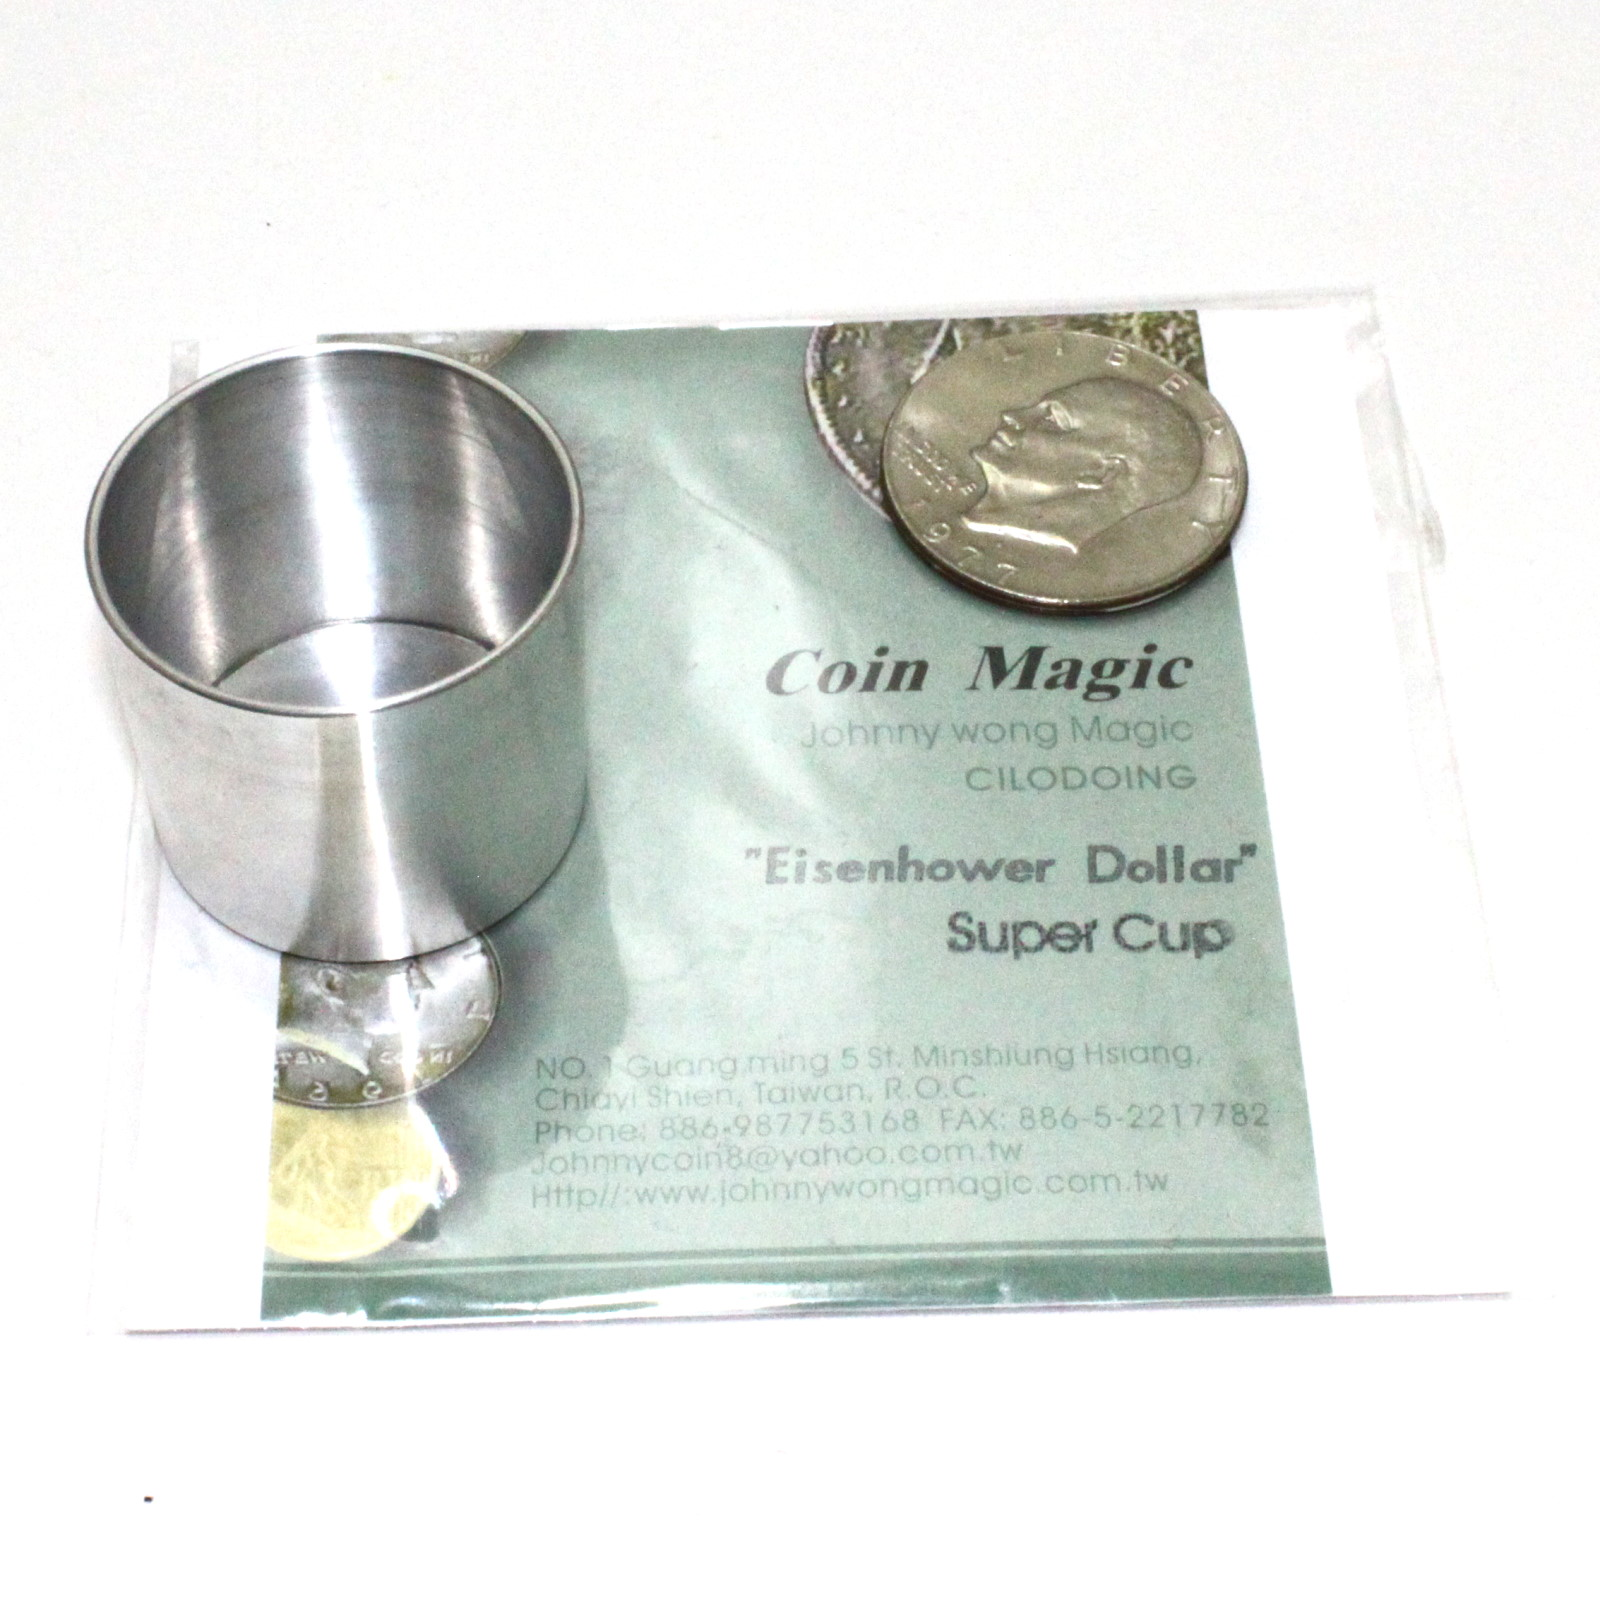 Super Cup (Eisenhower Dollar) by Johnny Wong